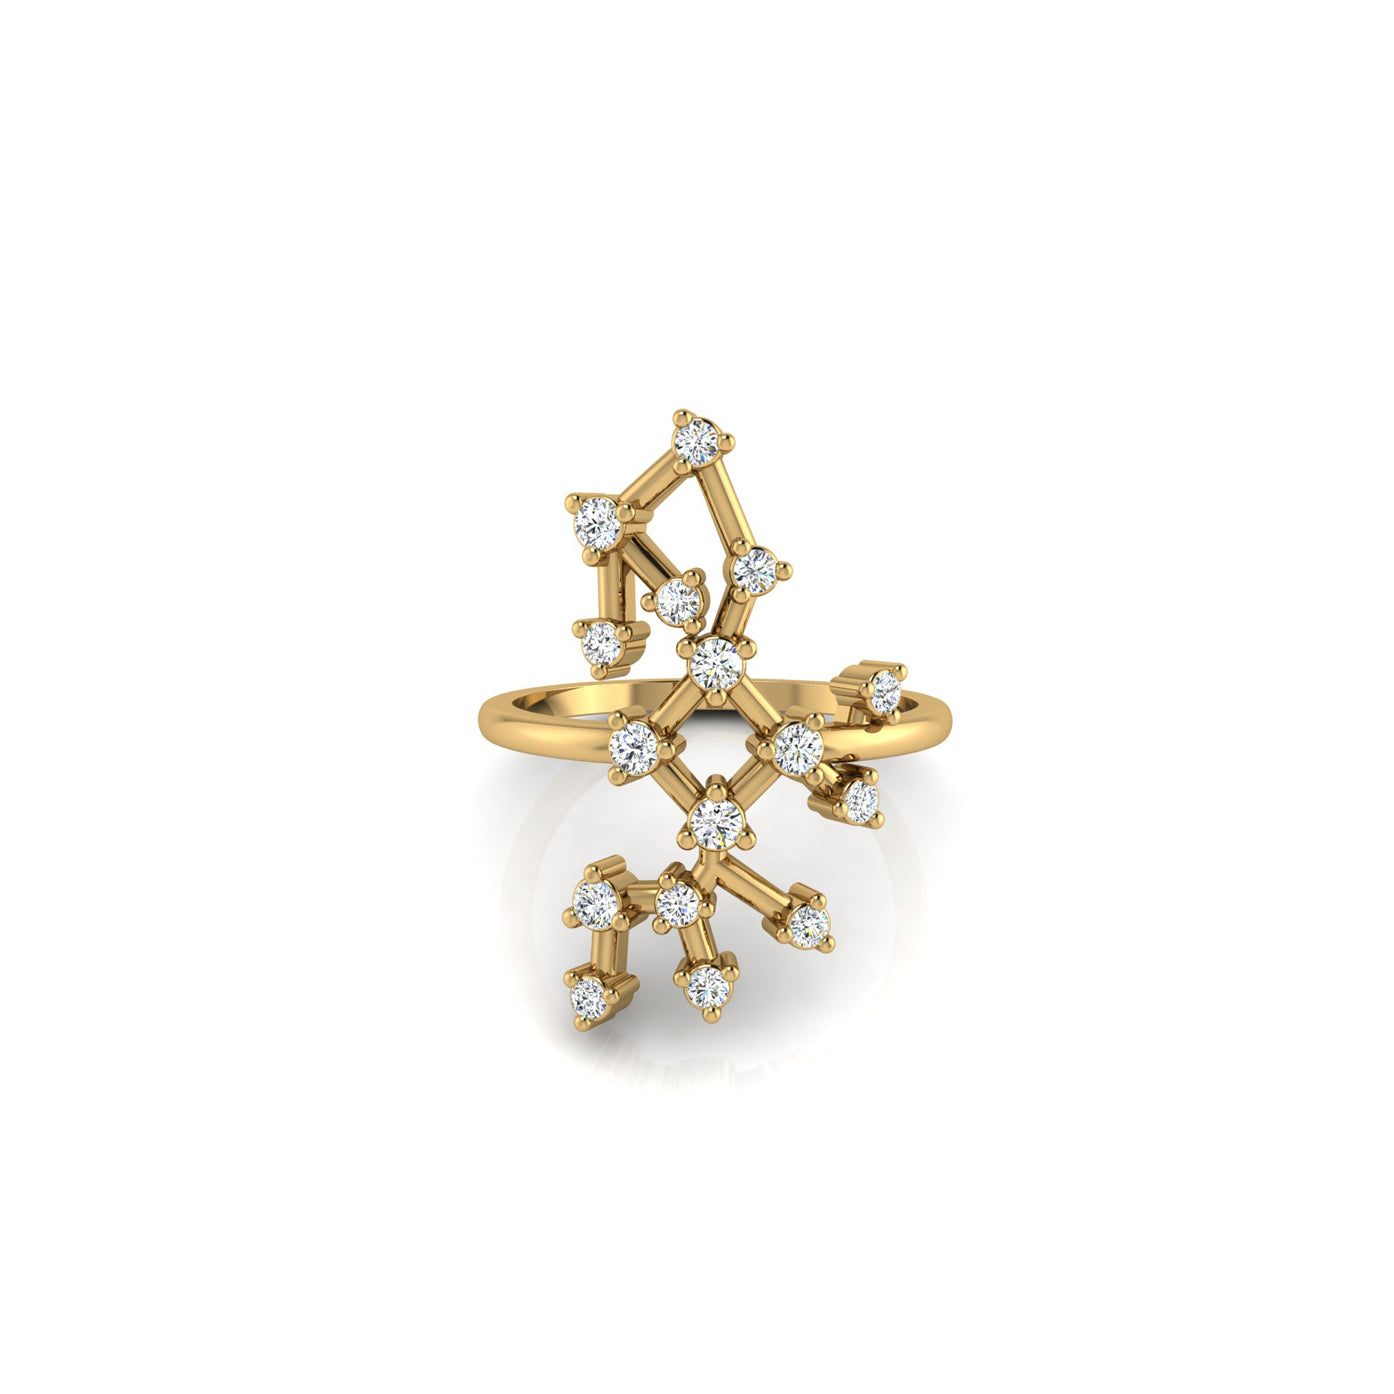 Sagittarius Constellation Ring - Tippy Taste Jewelry